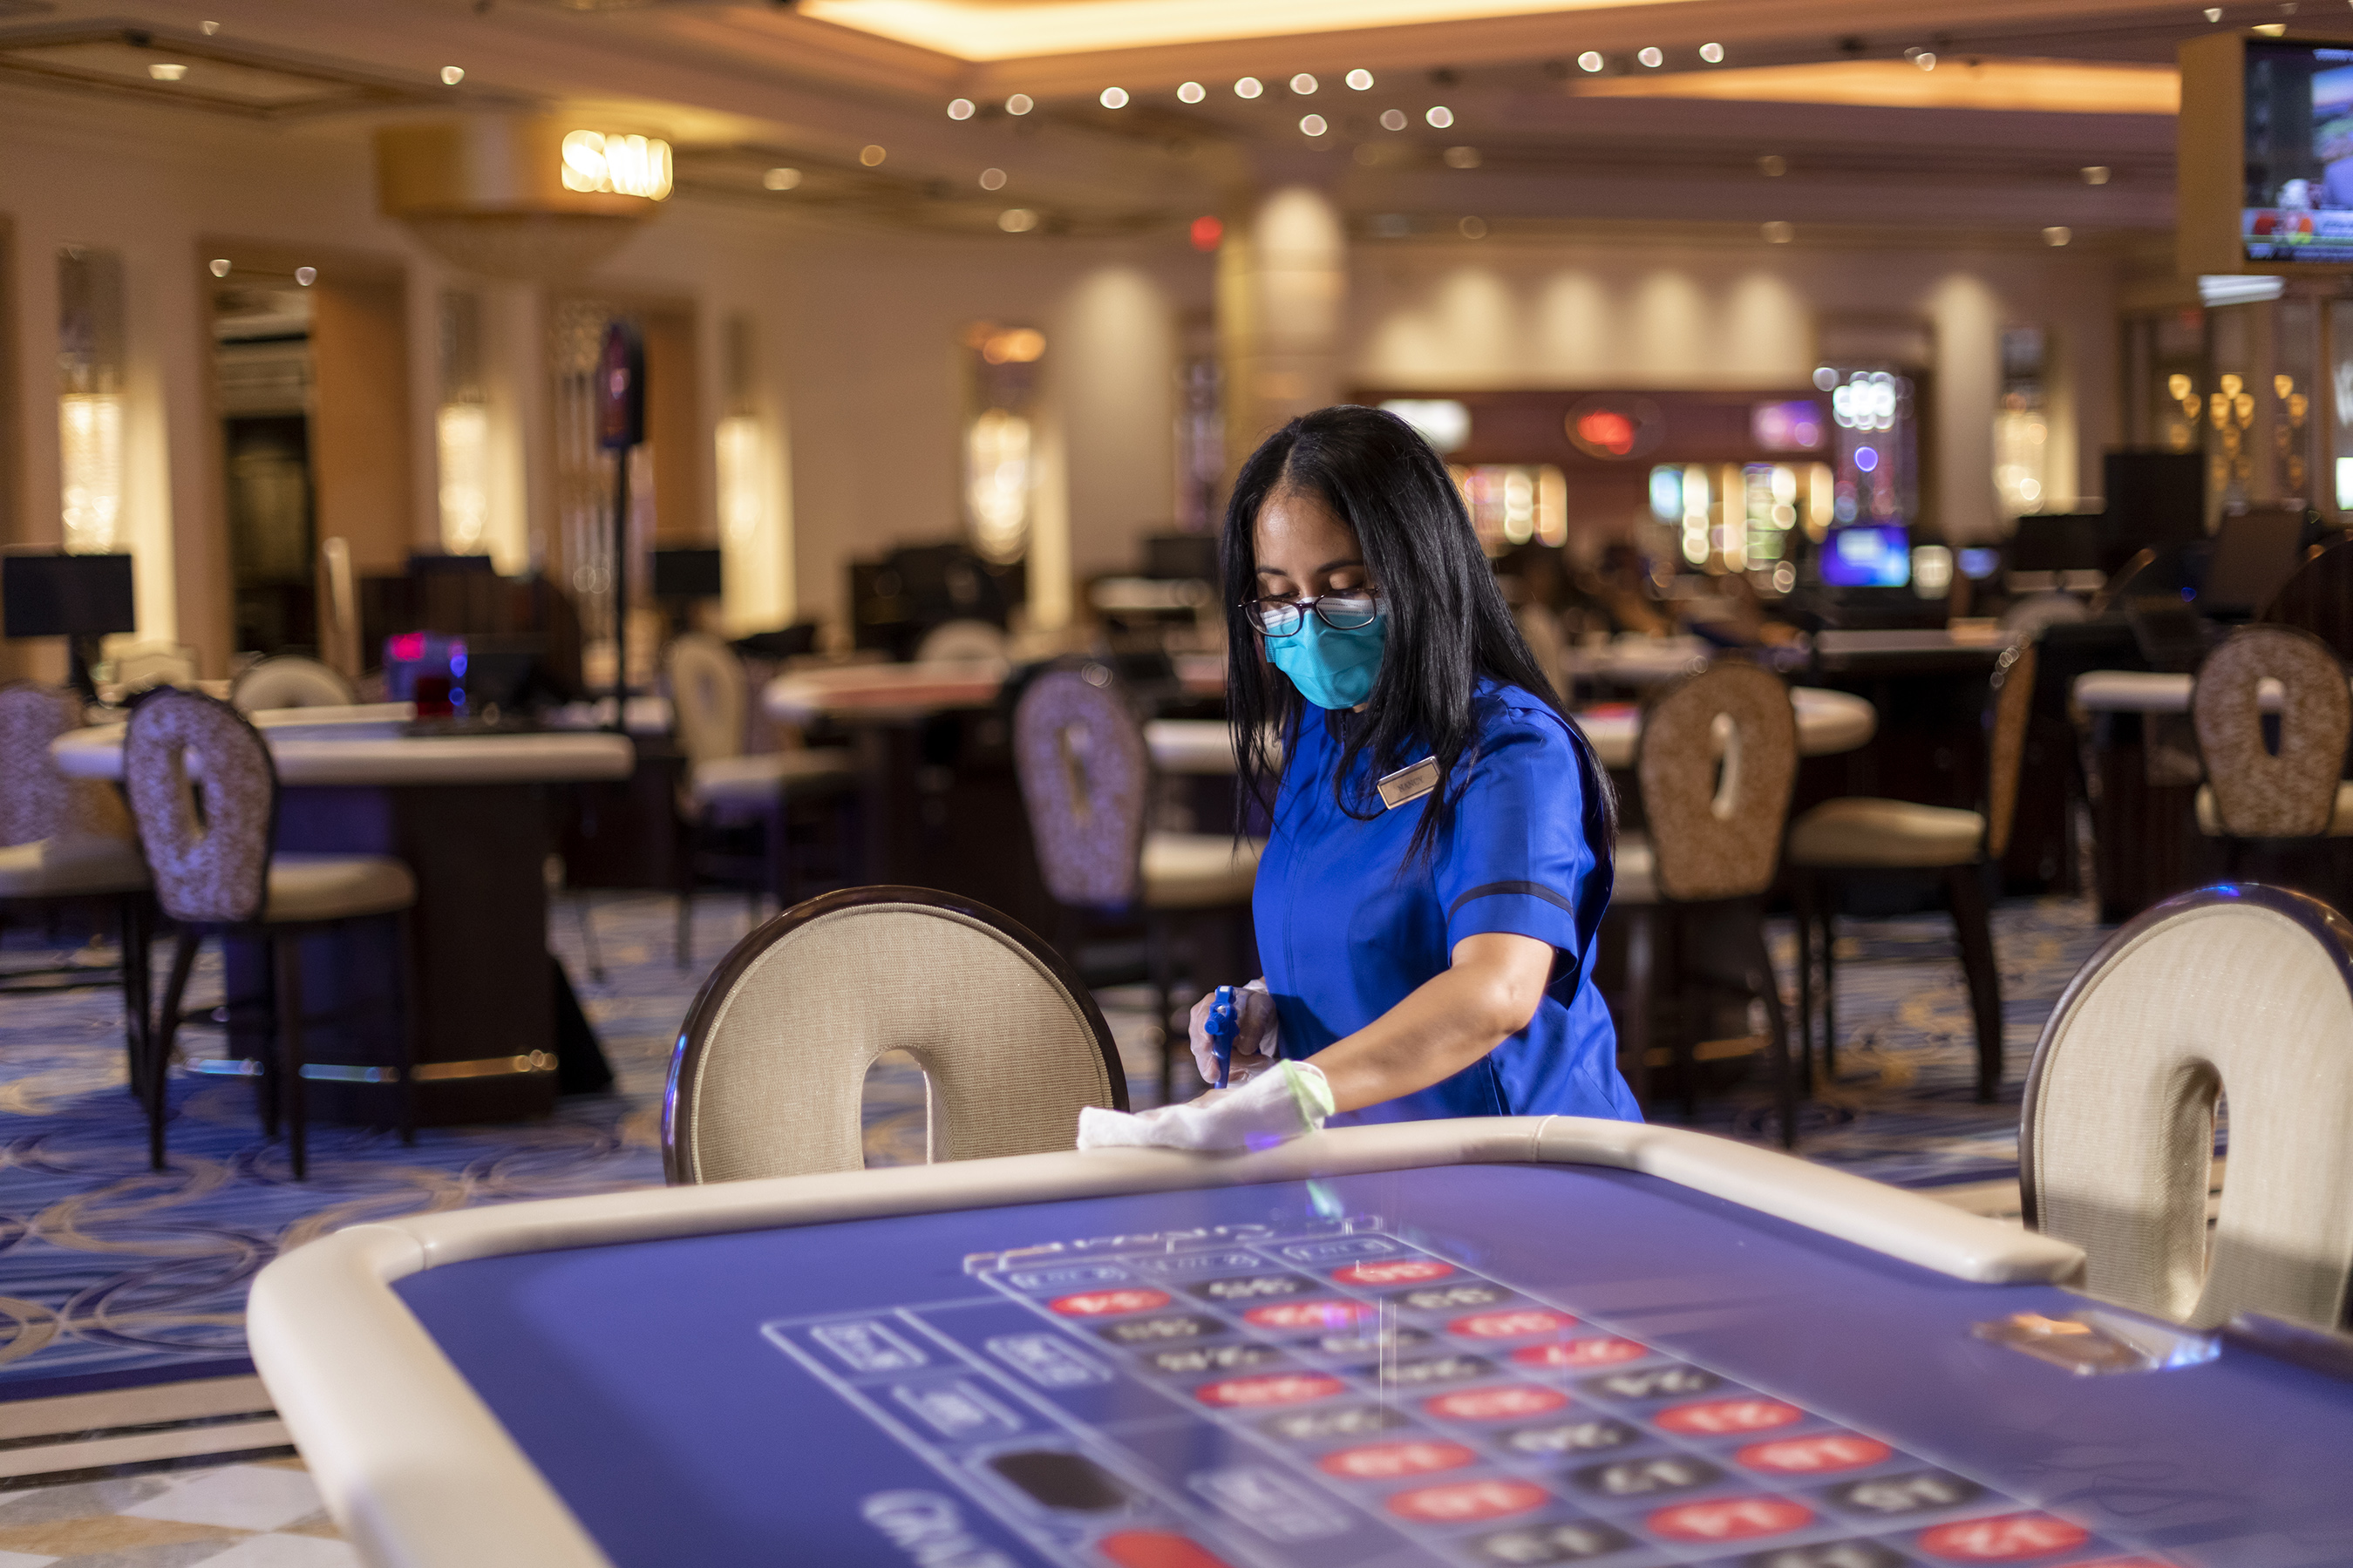 To ensure a pristine Venetian Clean experience, we utilize dedicated staff to disinfect our casino areas around the clock, including table game areas, slot machines, electronic kiosks, and chairs.